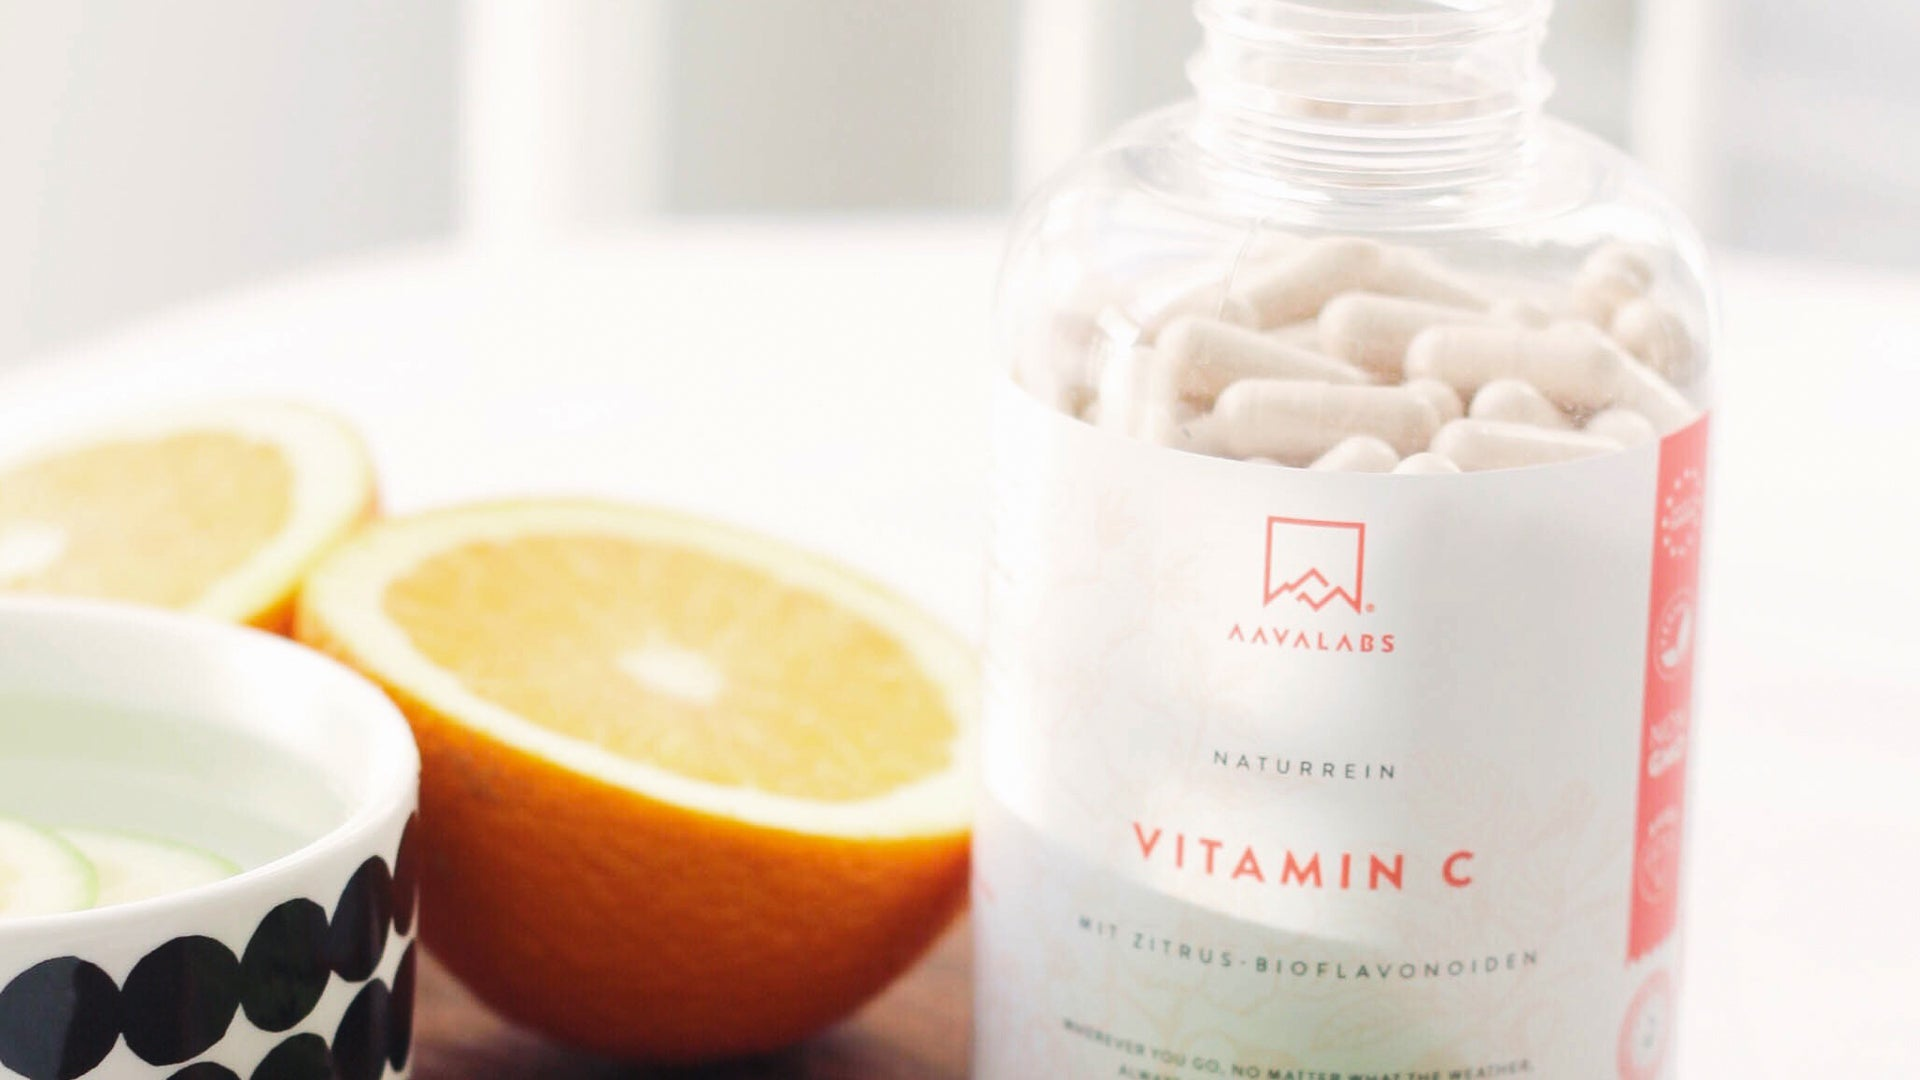 7 Amazing Health Benefits of Vitamin C Everyone Should Know